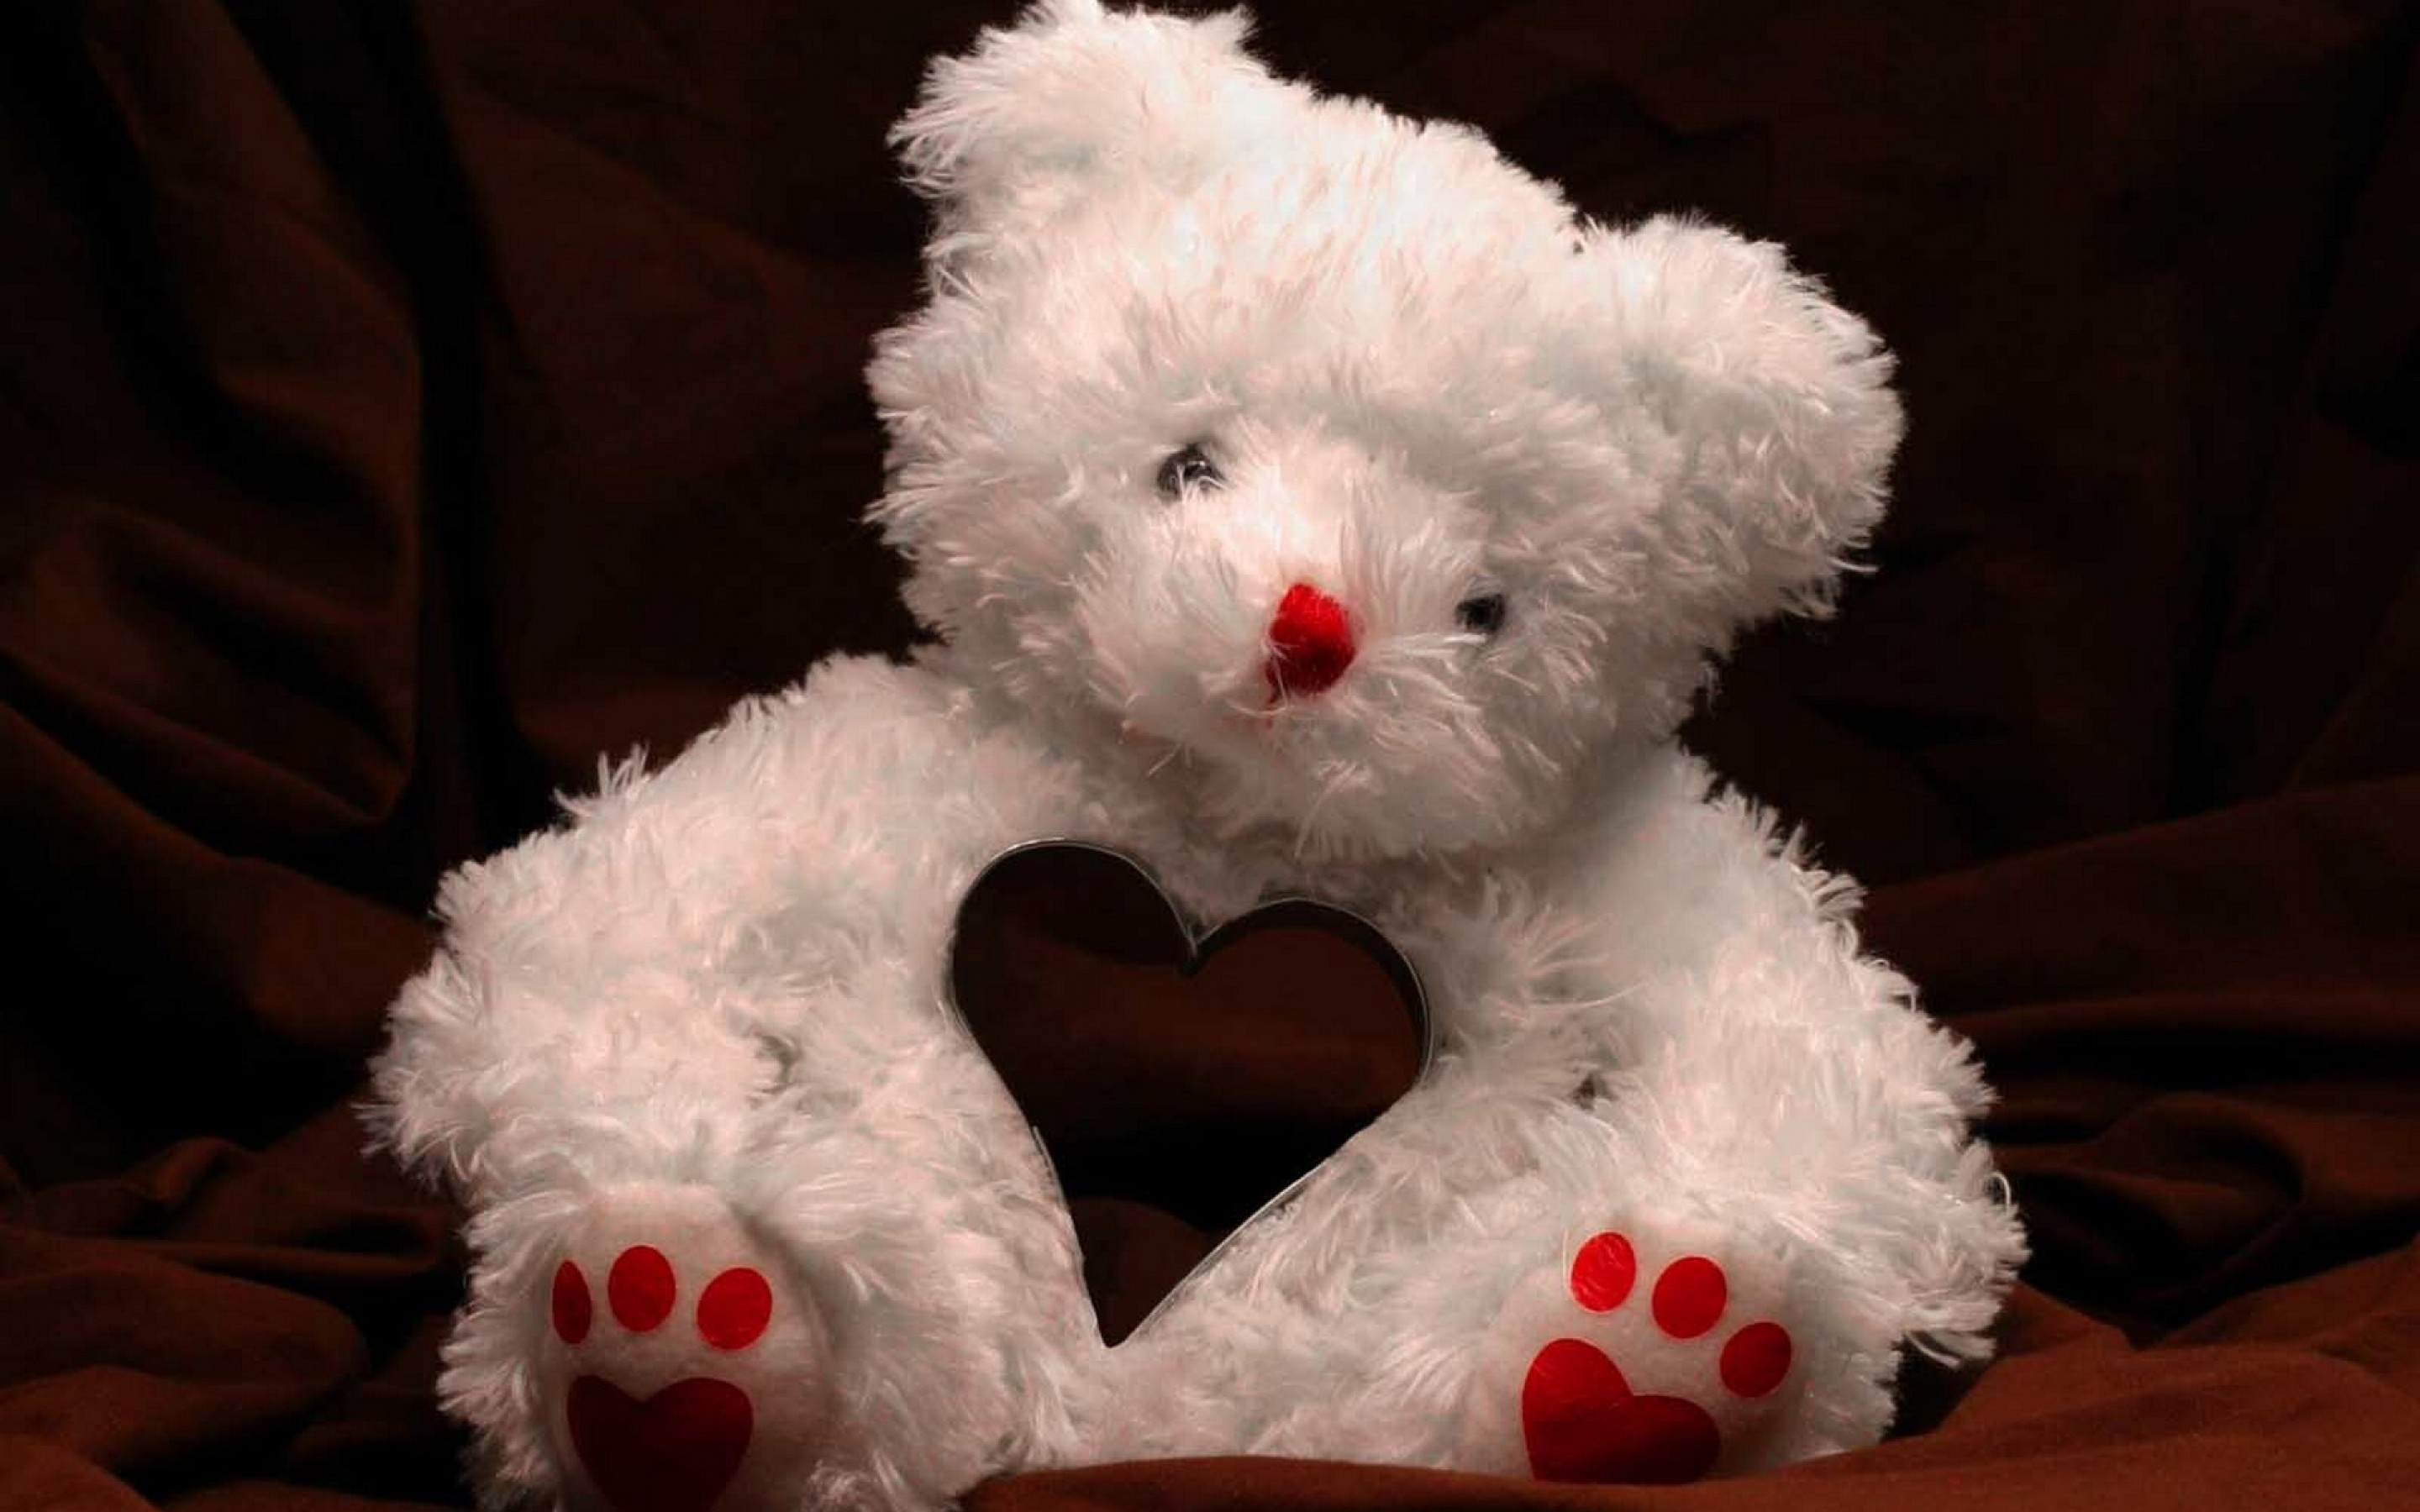 teddy bear5 300x187 20+ Full Size Cute Teddy Bears HD Wallpapers